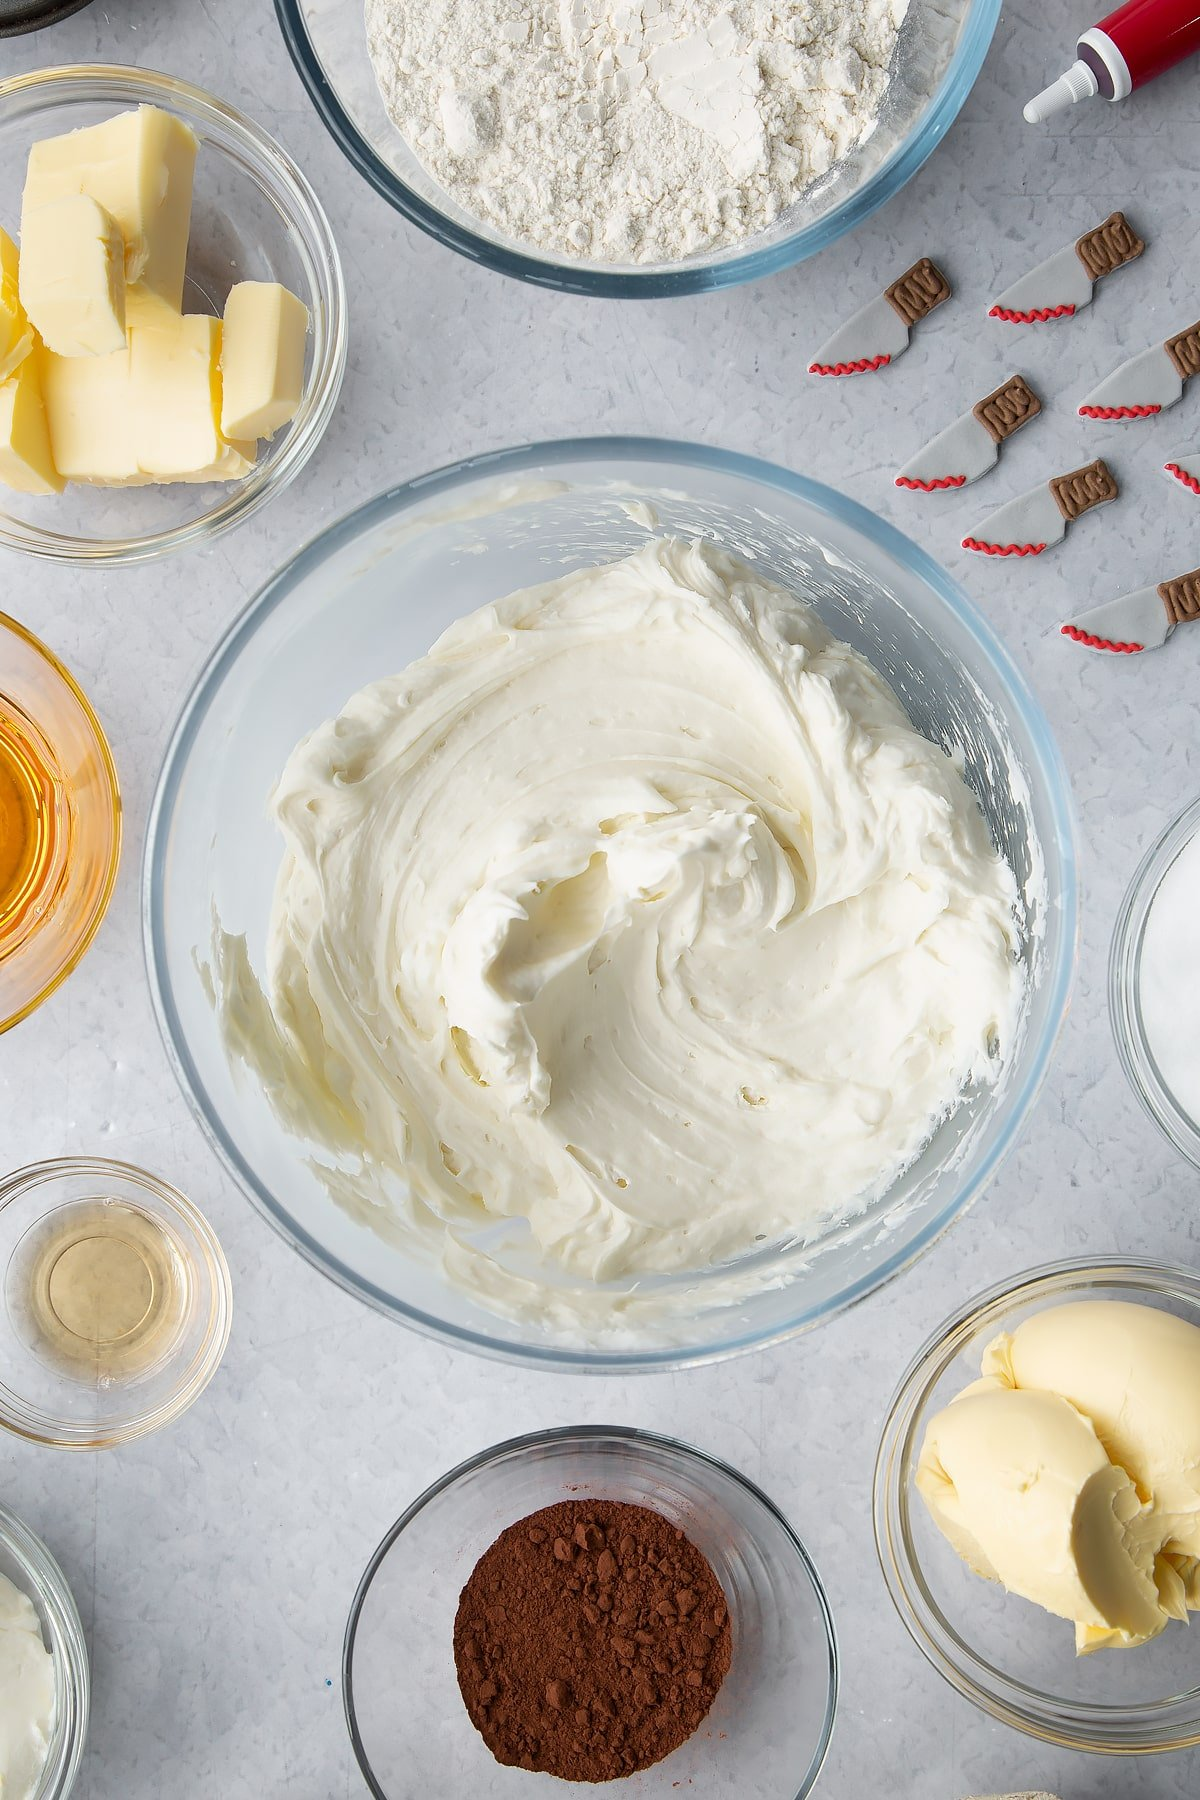 Cream cheese frosting in a glass bowl. Ingredients to make red velvet Halloween cupcakes surround the bowl.